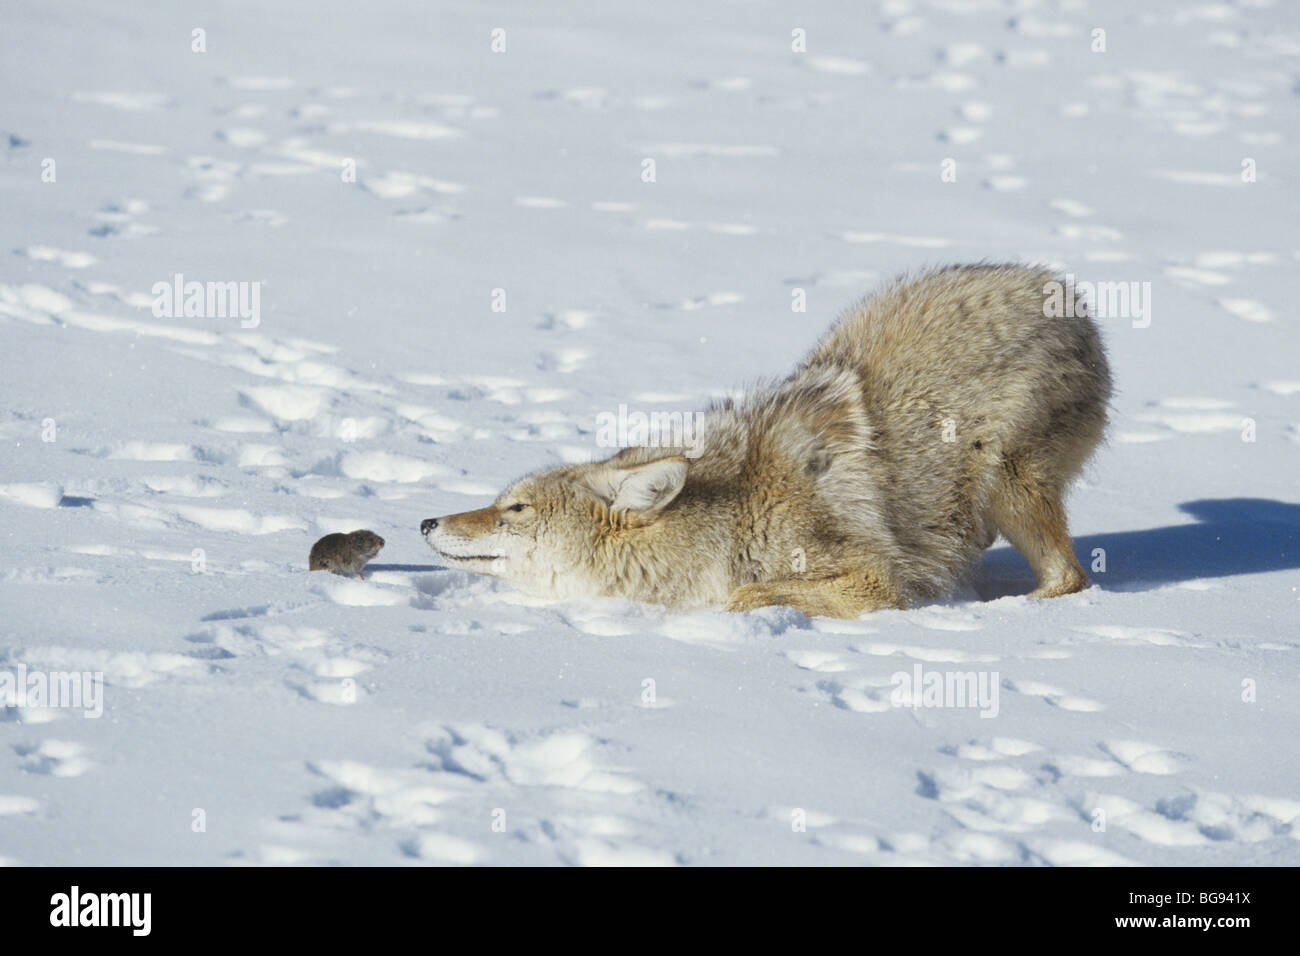 Coyote (Canis latrans), adult playing with vole prey, Yellowstone National Park, Wyoming, USA - Stock Image